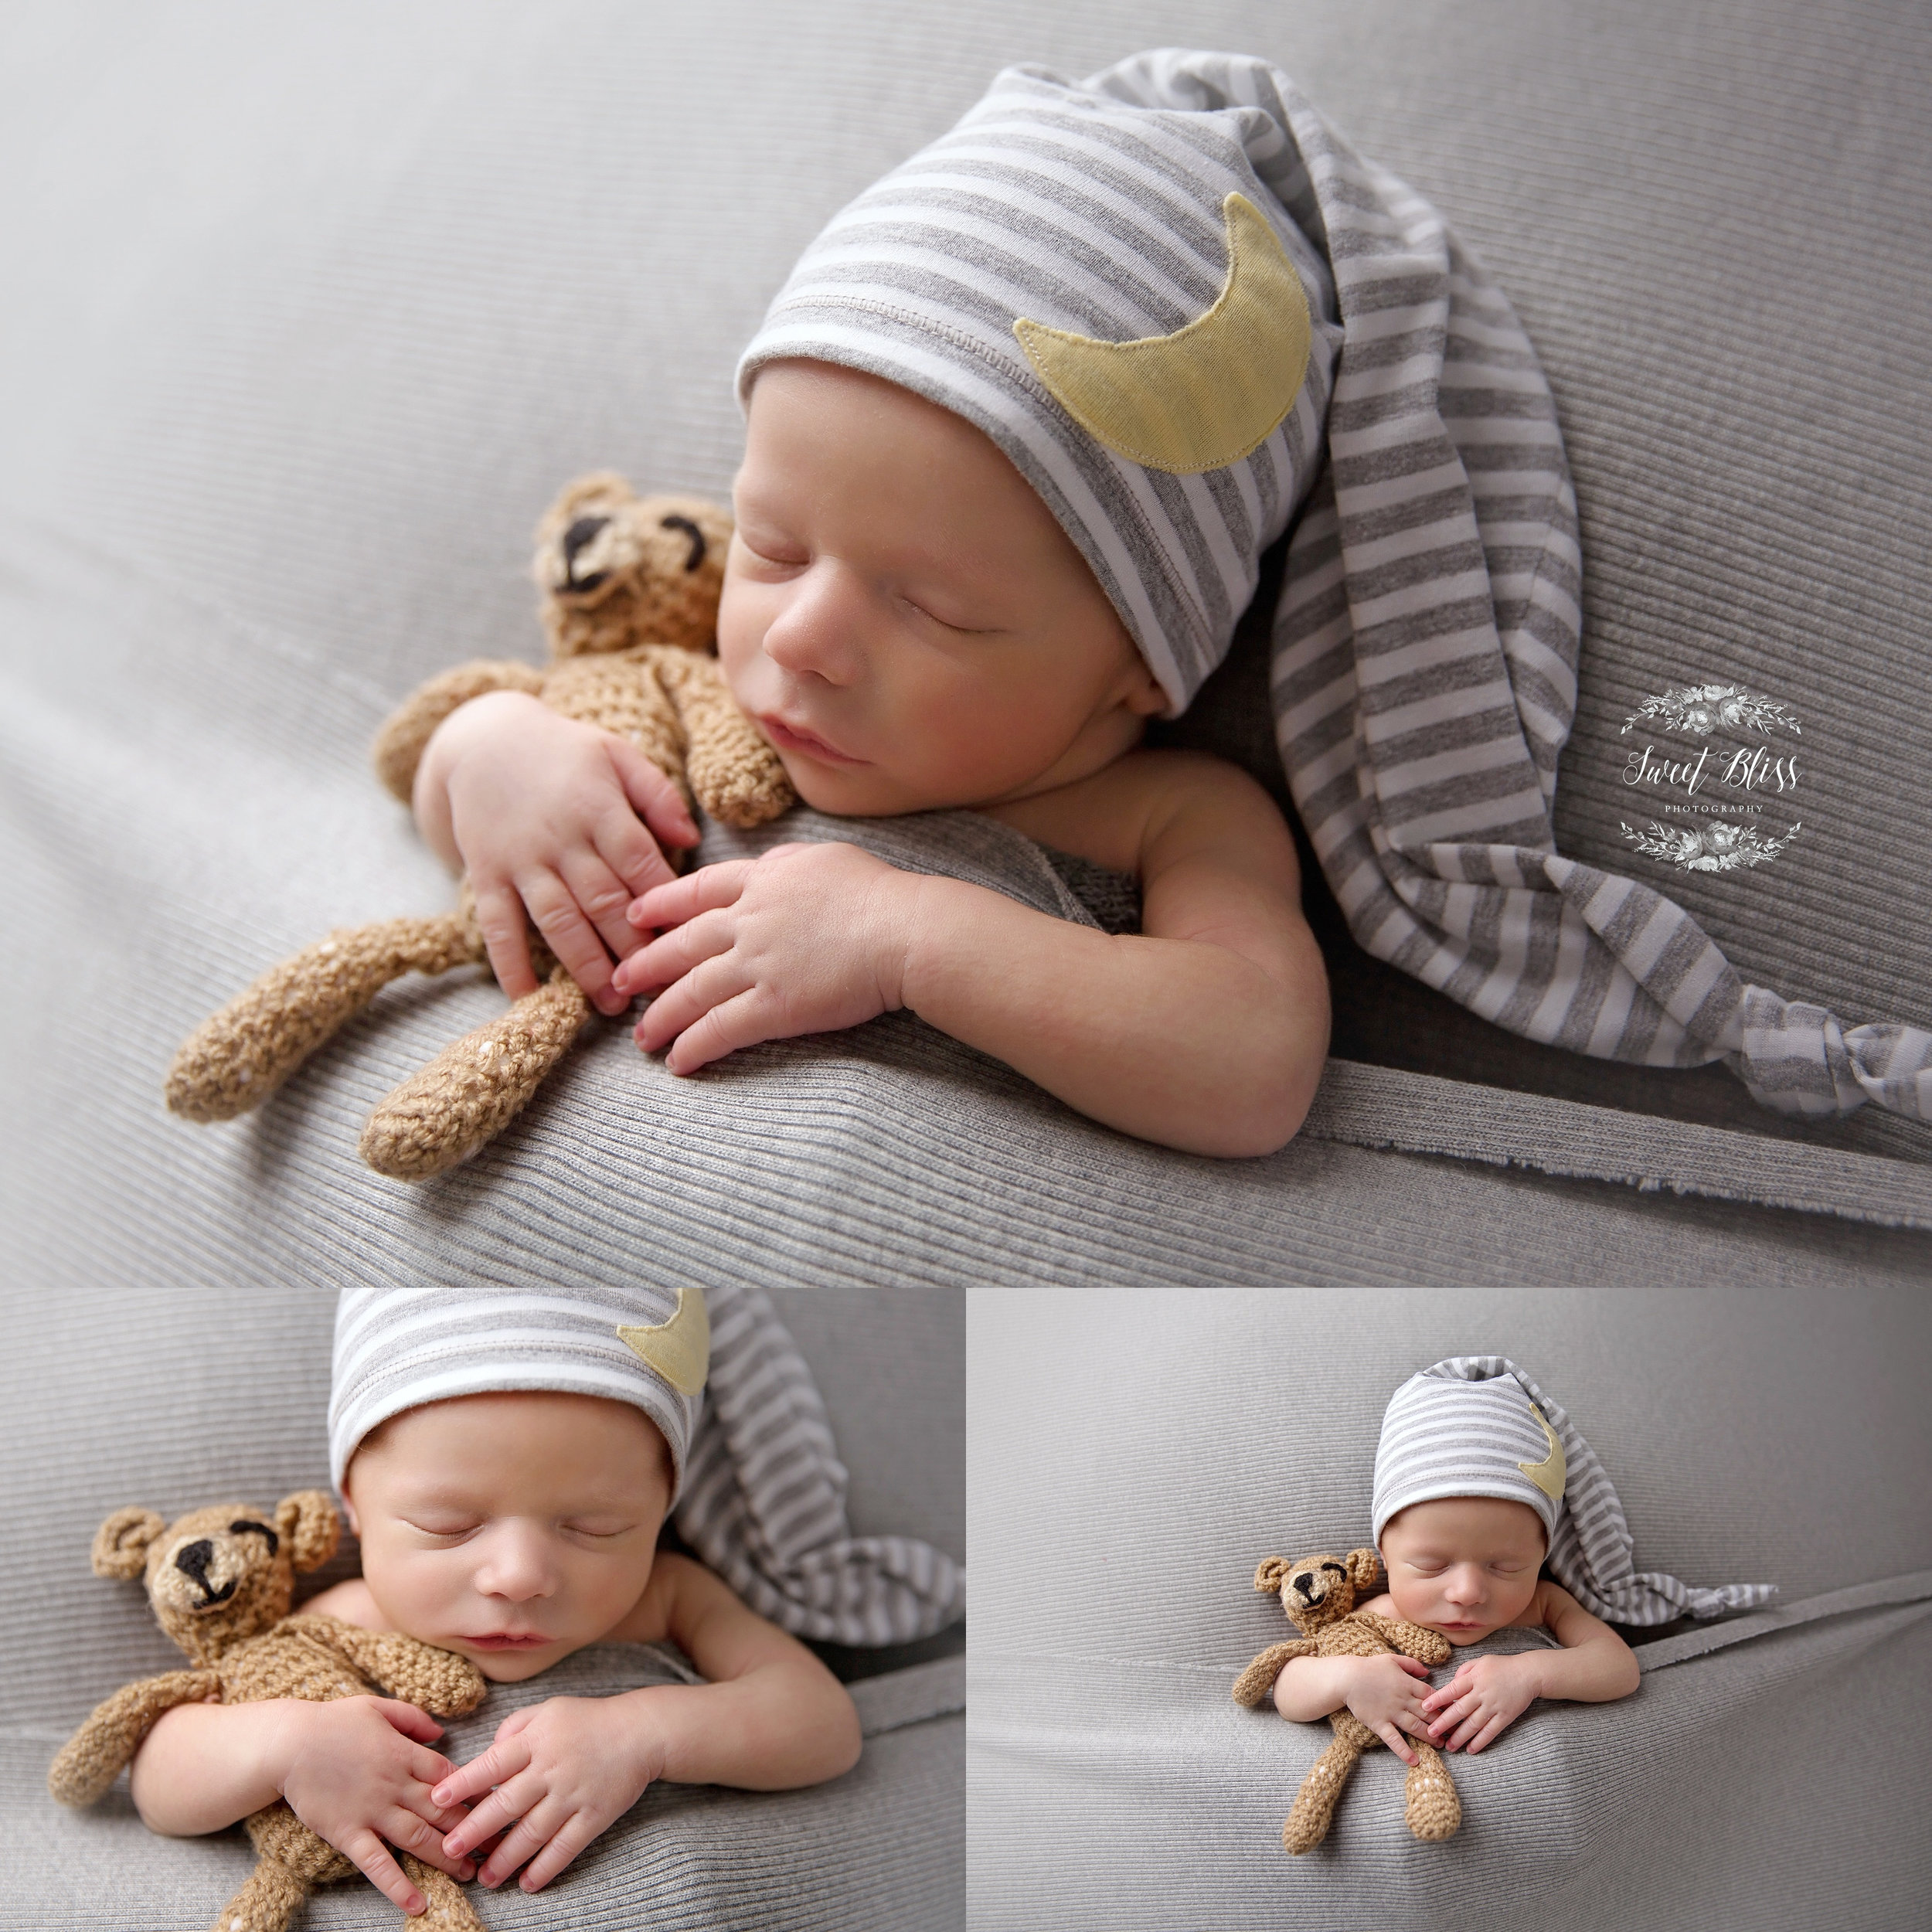 Baltimorenewbornphotographer_harfordcountynewborn_greyblanket2.jpg